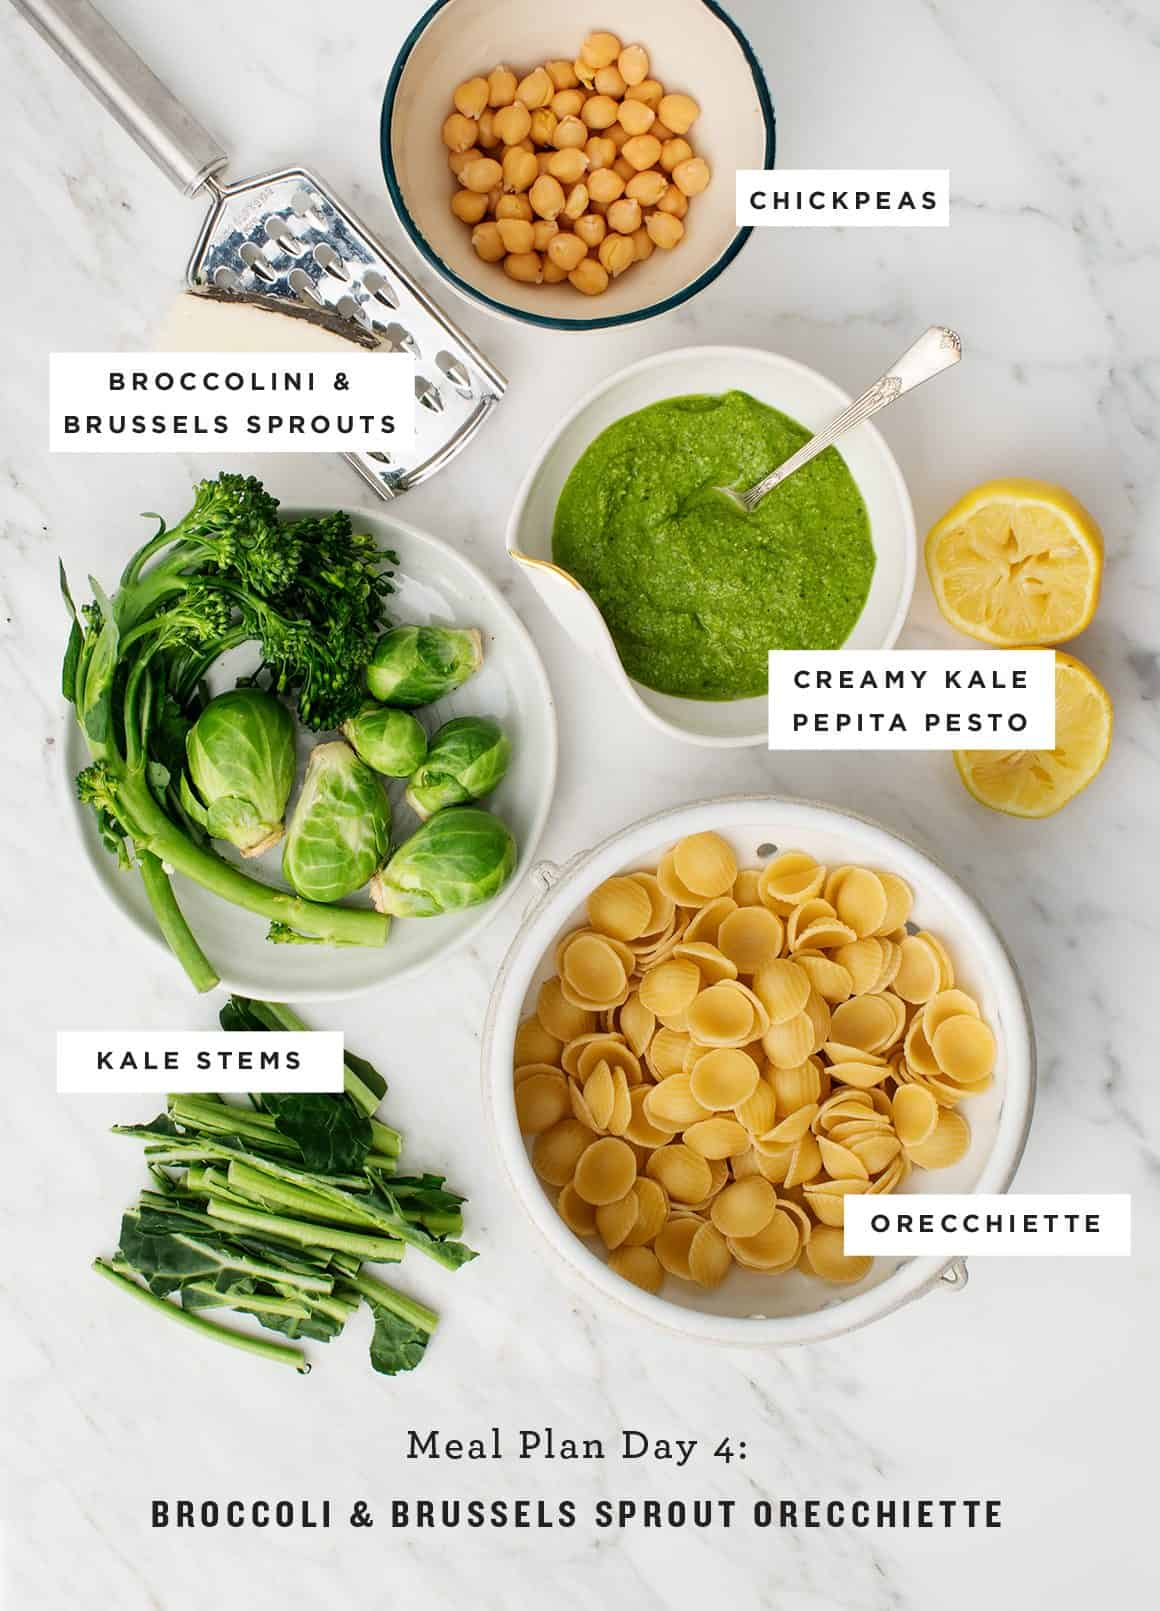 Meal Plan Day 4: Broccoli & Brussels Sprout Orecchiette